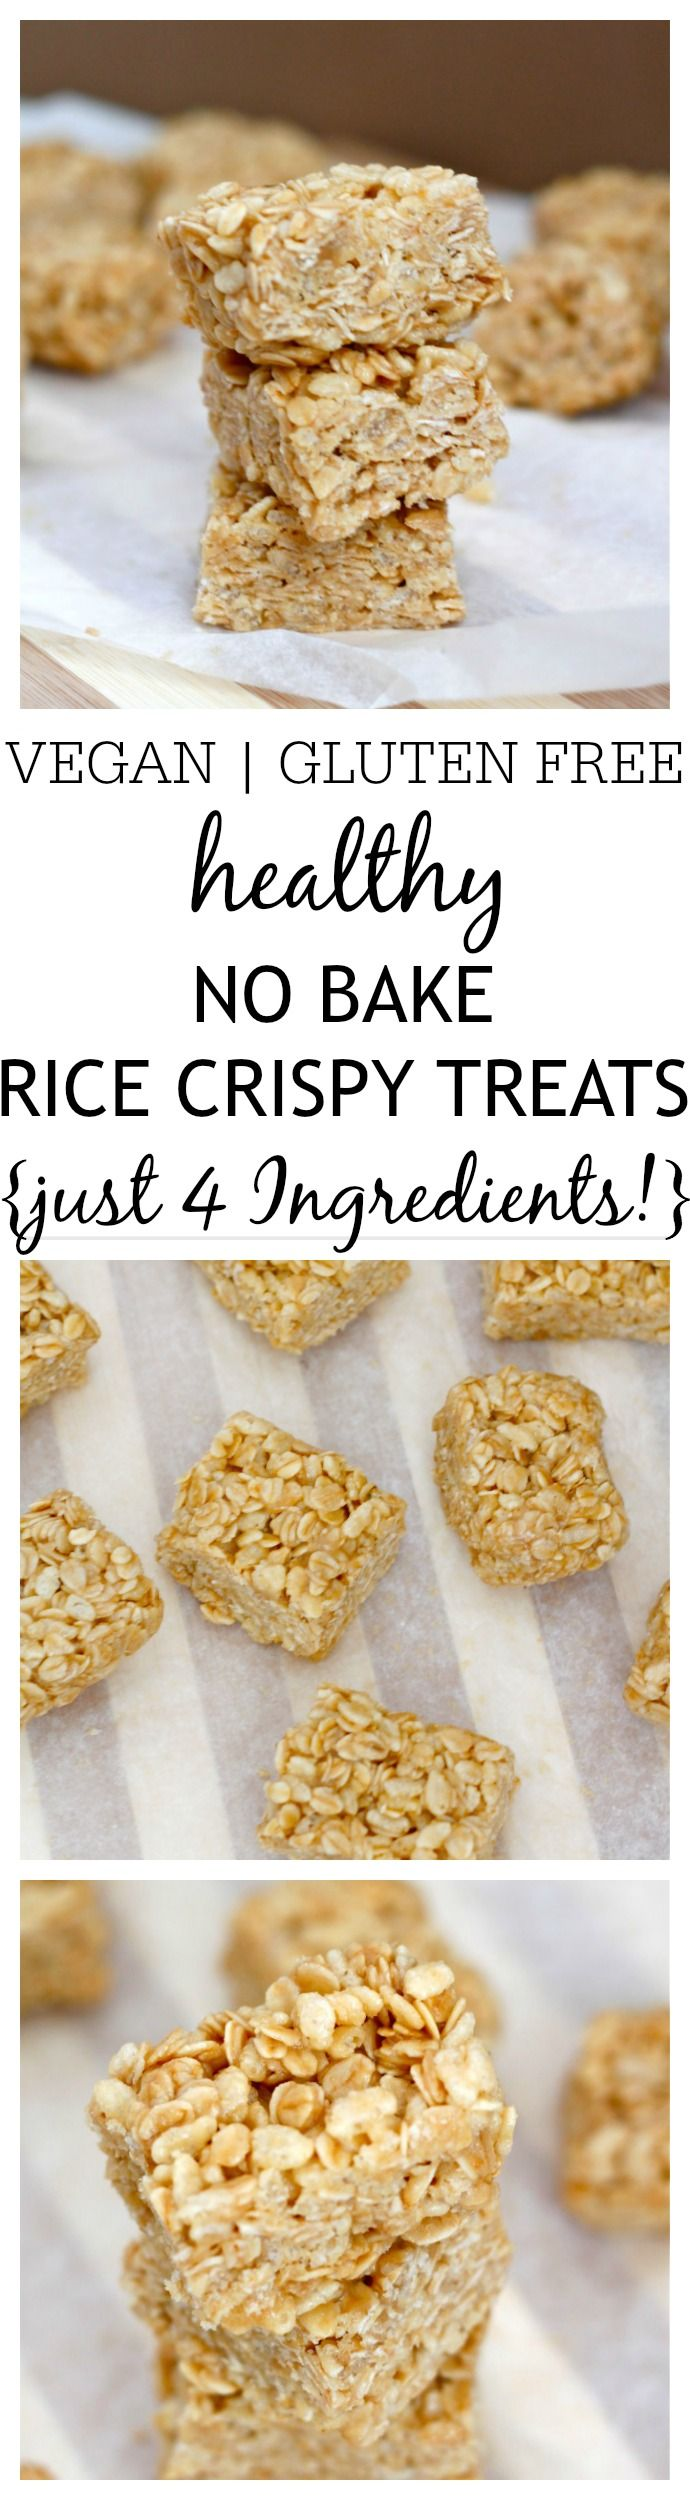 Just four healthy ingredients, 1 bowl and 10 minutes is needed to whip up these simple No Bake Rice Crispy Treats! Vegan, gluten free, refined sugar free and dairy free!